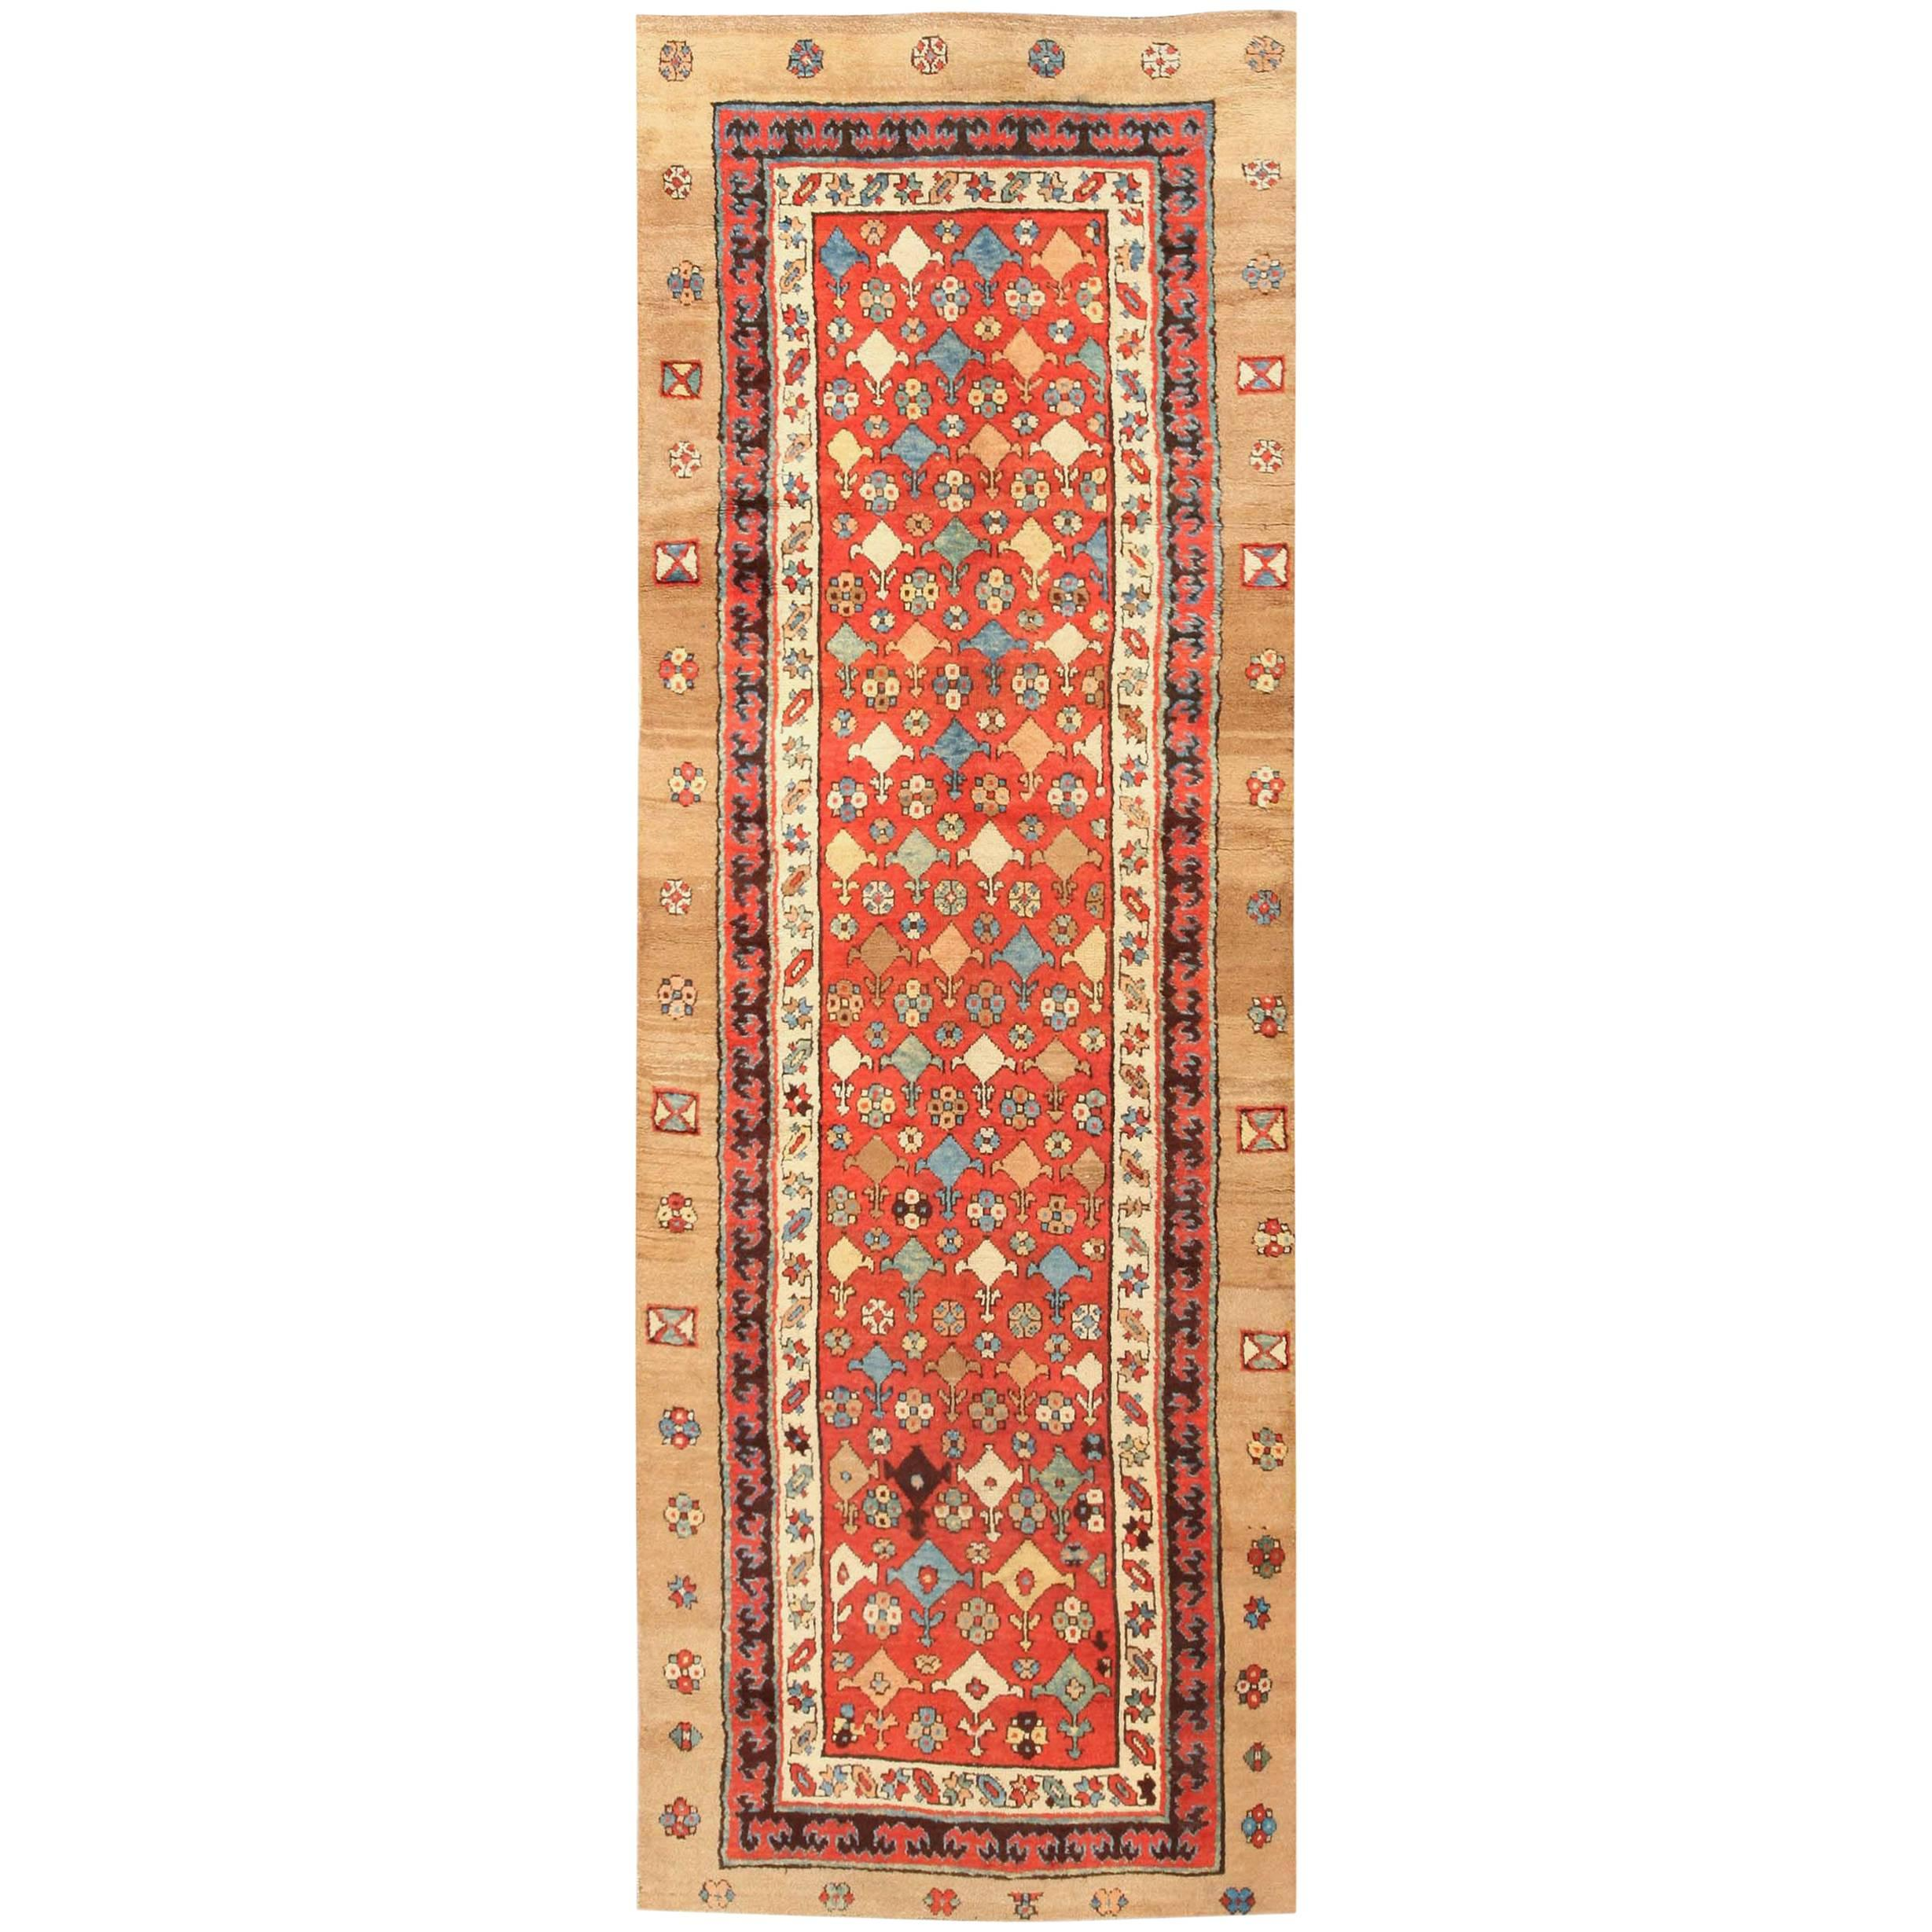 Small Tribal Antique Persian Bakshaish Rug. Size: 3 ft 7 in x 10 ft 2 in